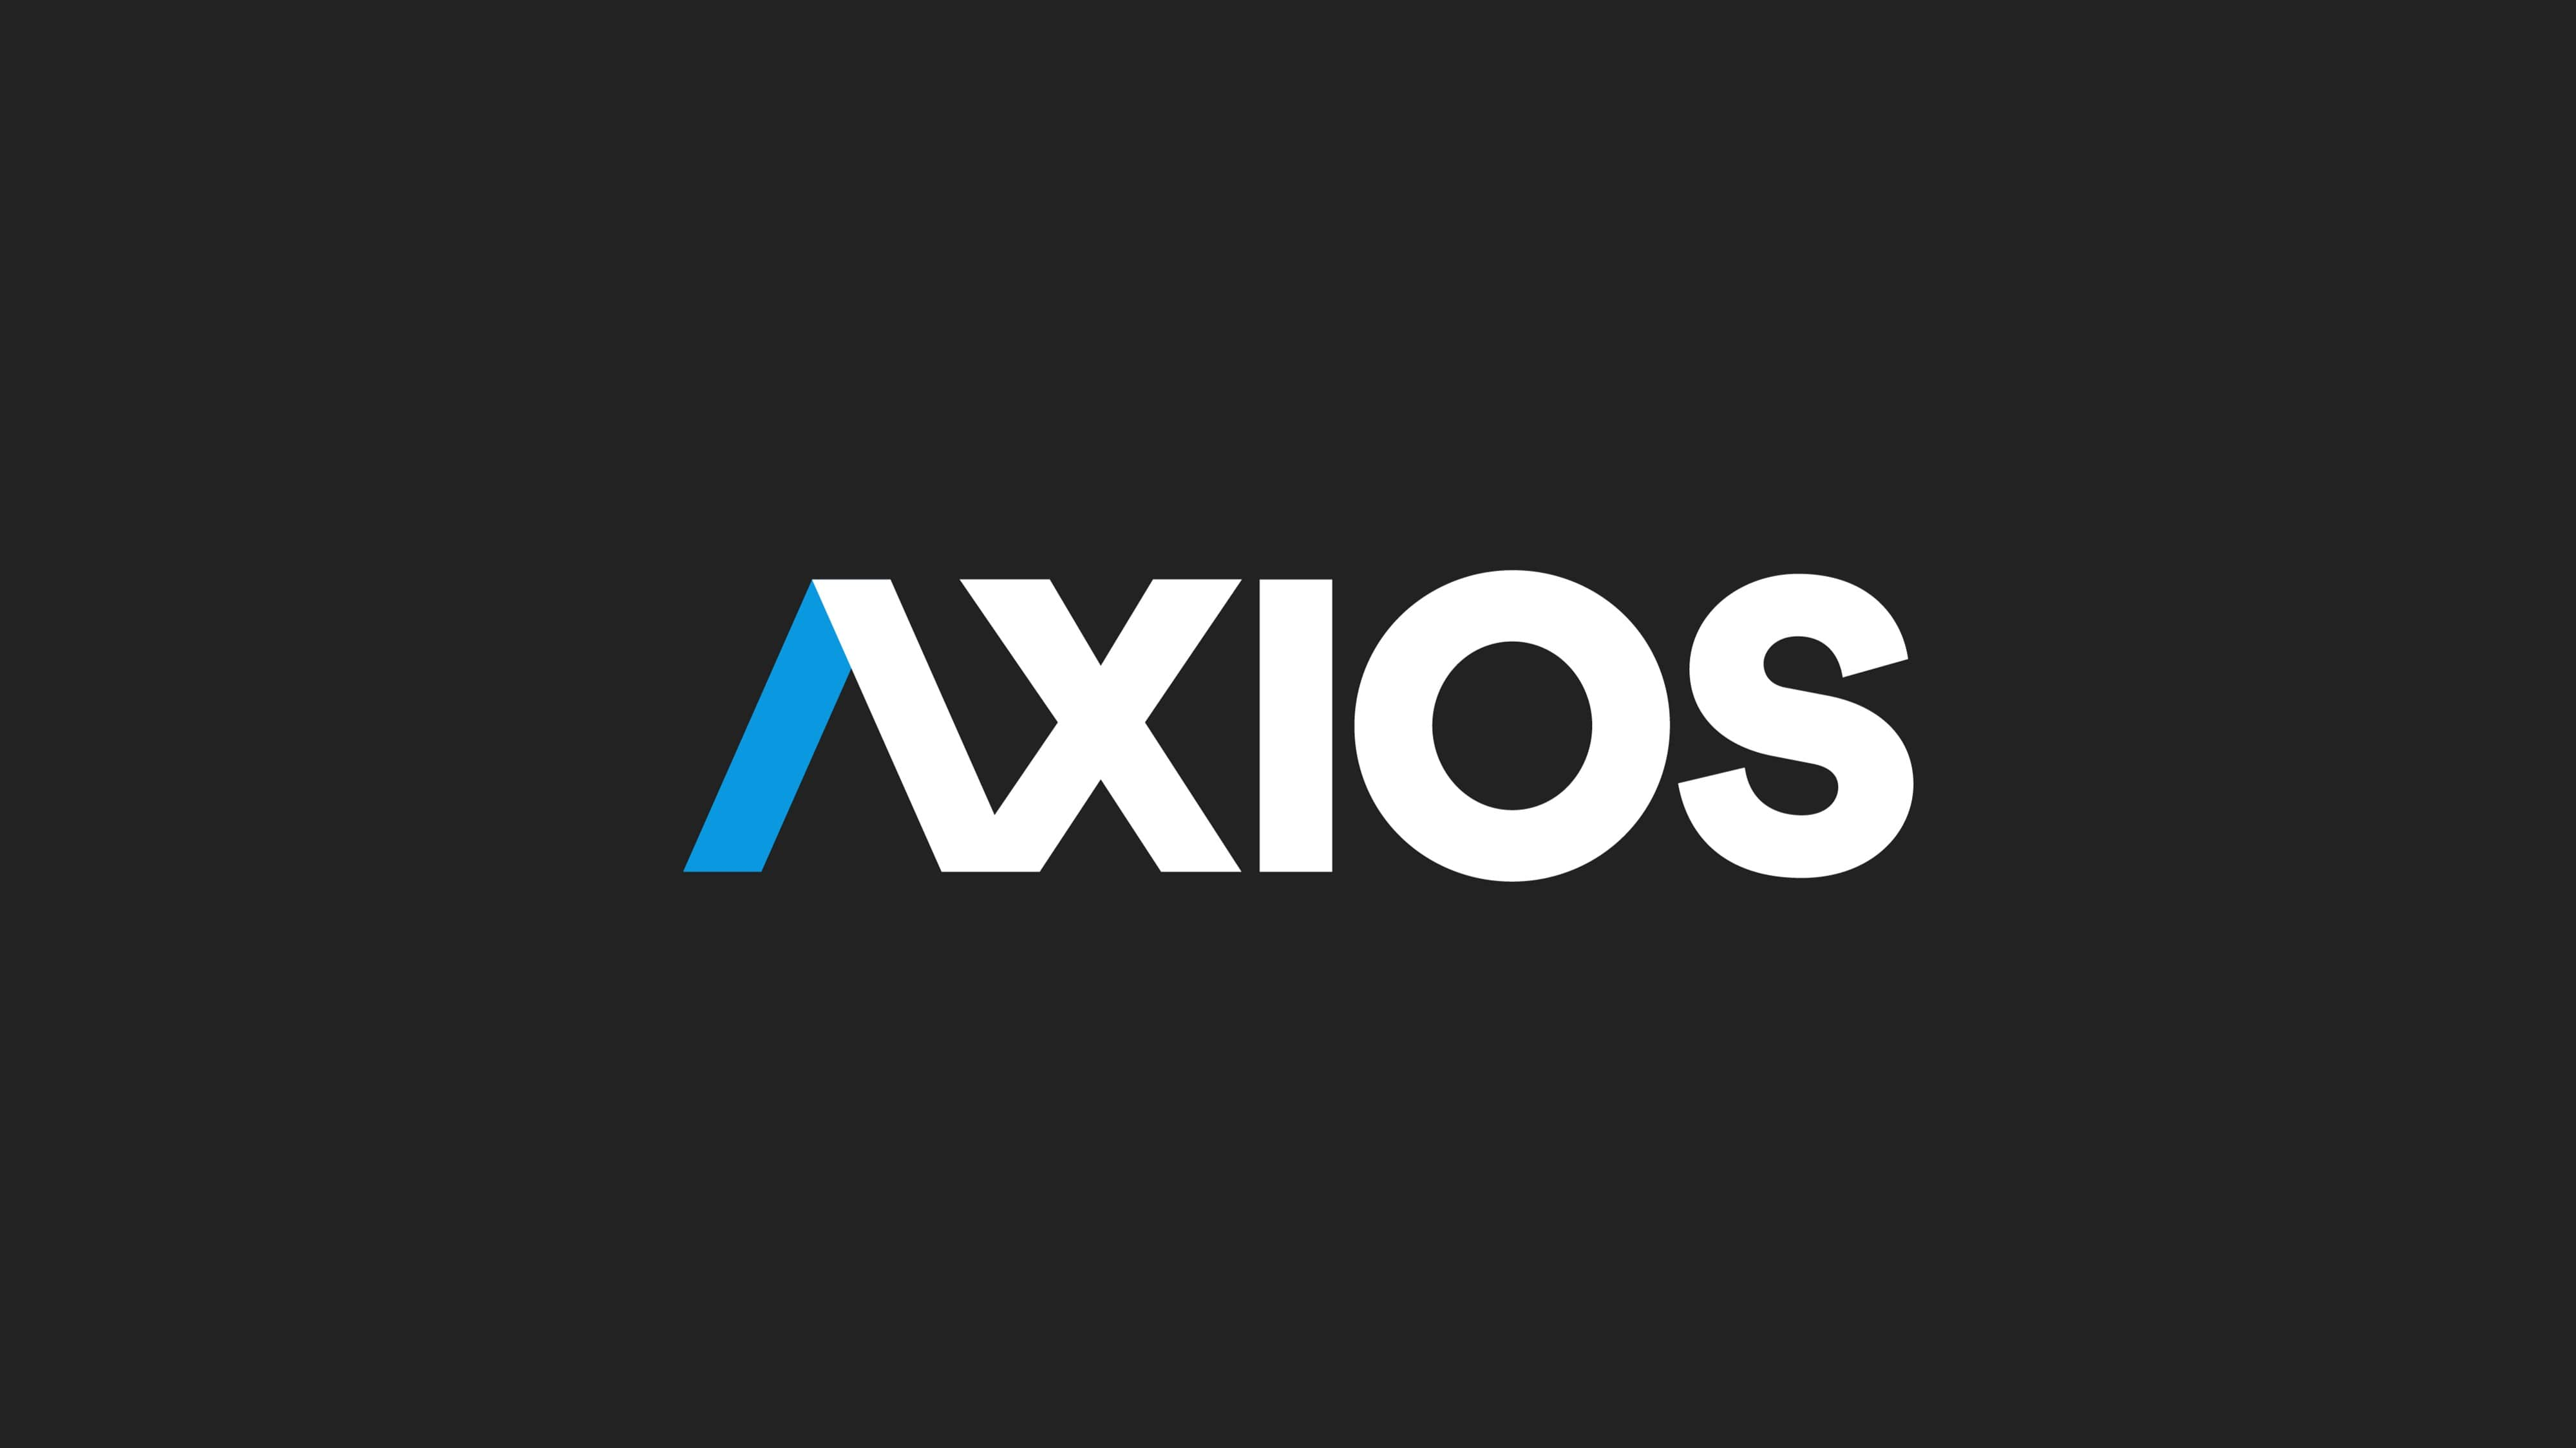 What is Axios?